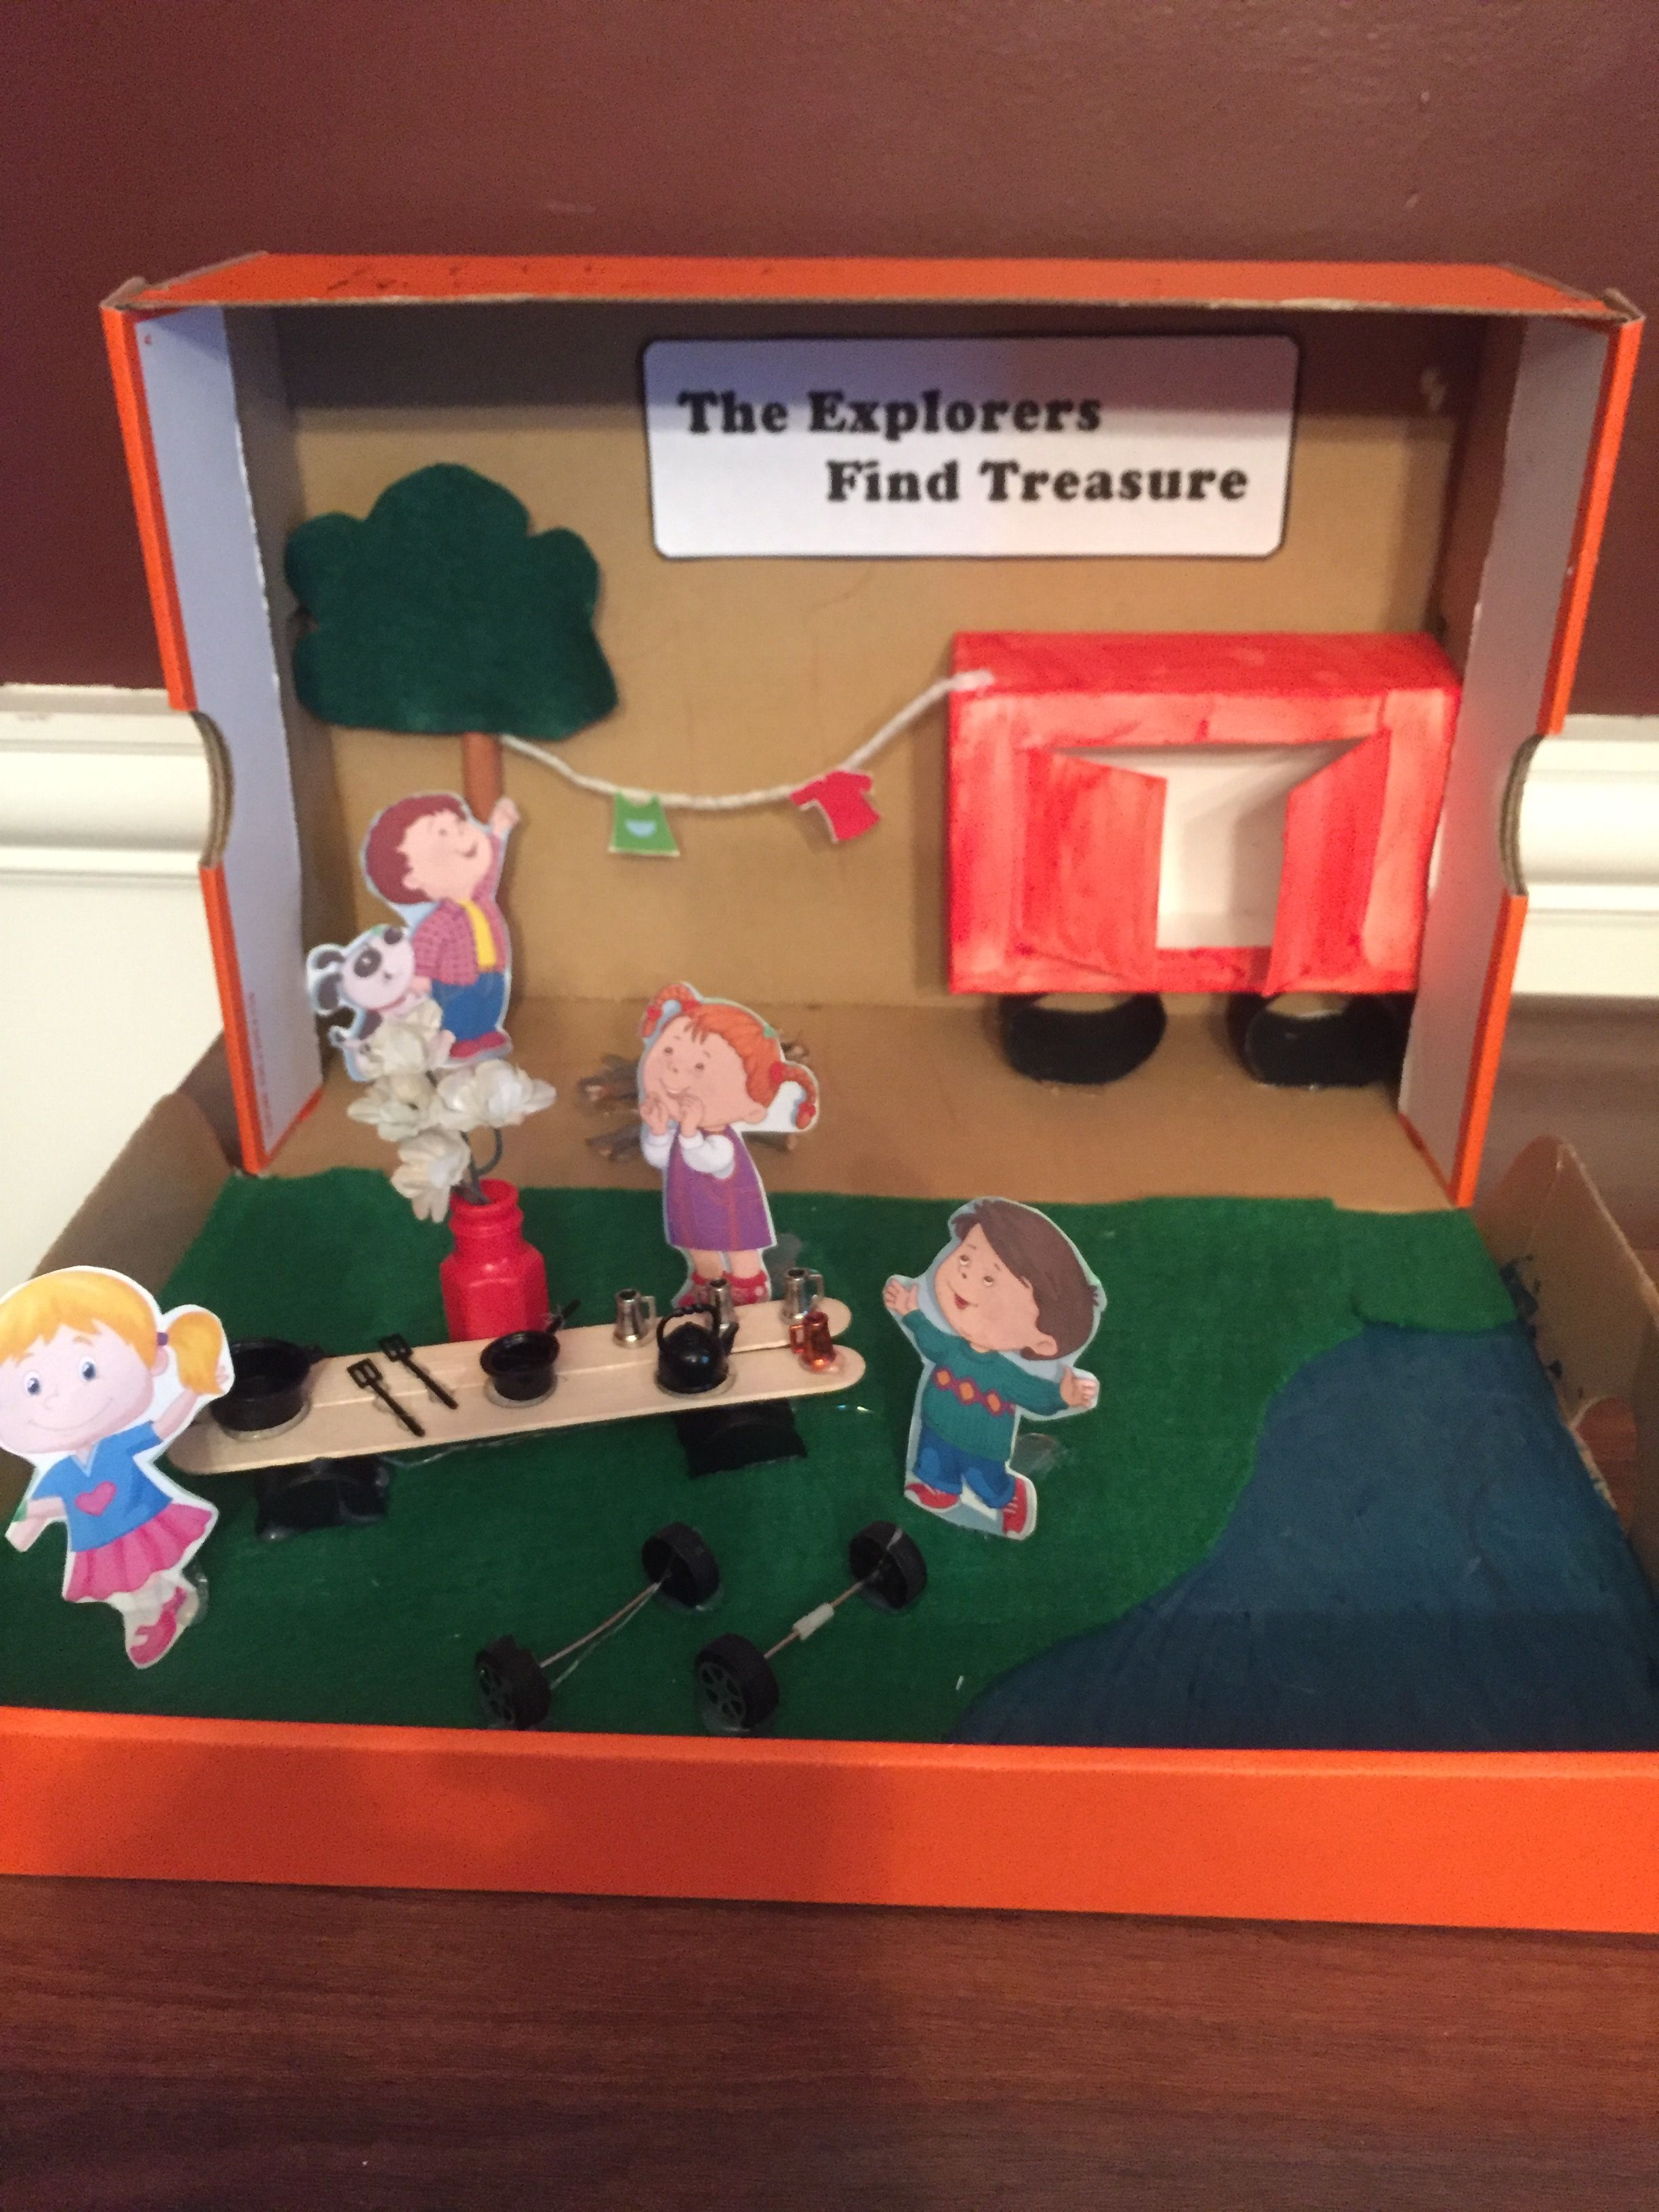 diorama book report directions Pyramid diorama (triarama) templates & directions | food chains )see moreat the same moment around the worldbooks bookssskidlit booksbooks comicsbabies booksbooks a triarama, or pyramid diorama, is an easy, hands-on, 3d project for homeschool narration, unit studies, or book reports.